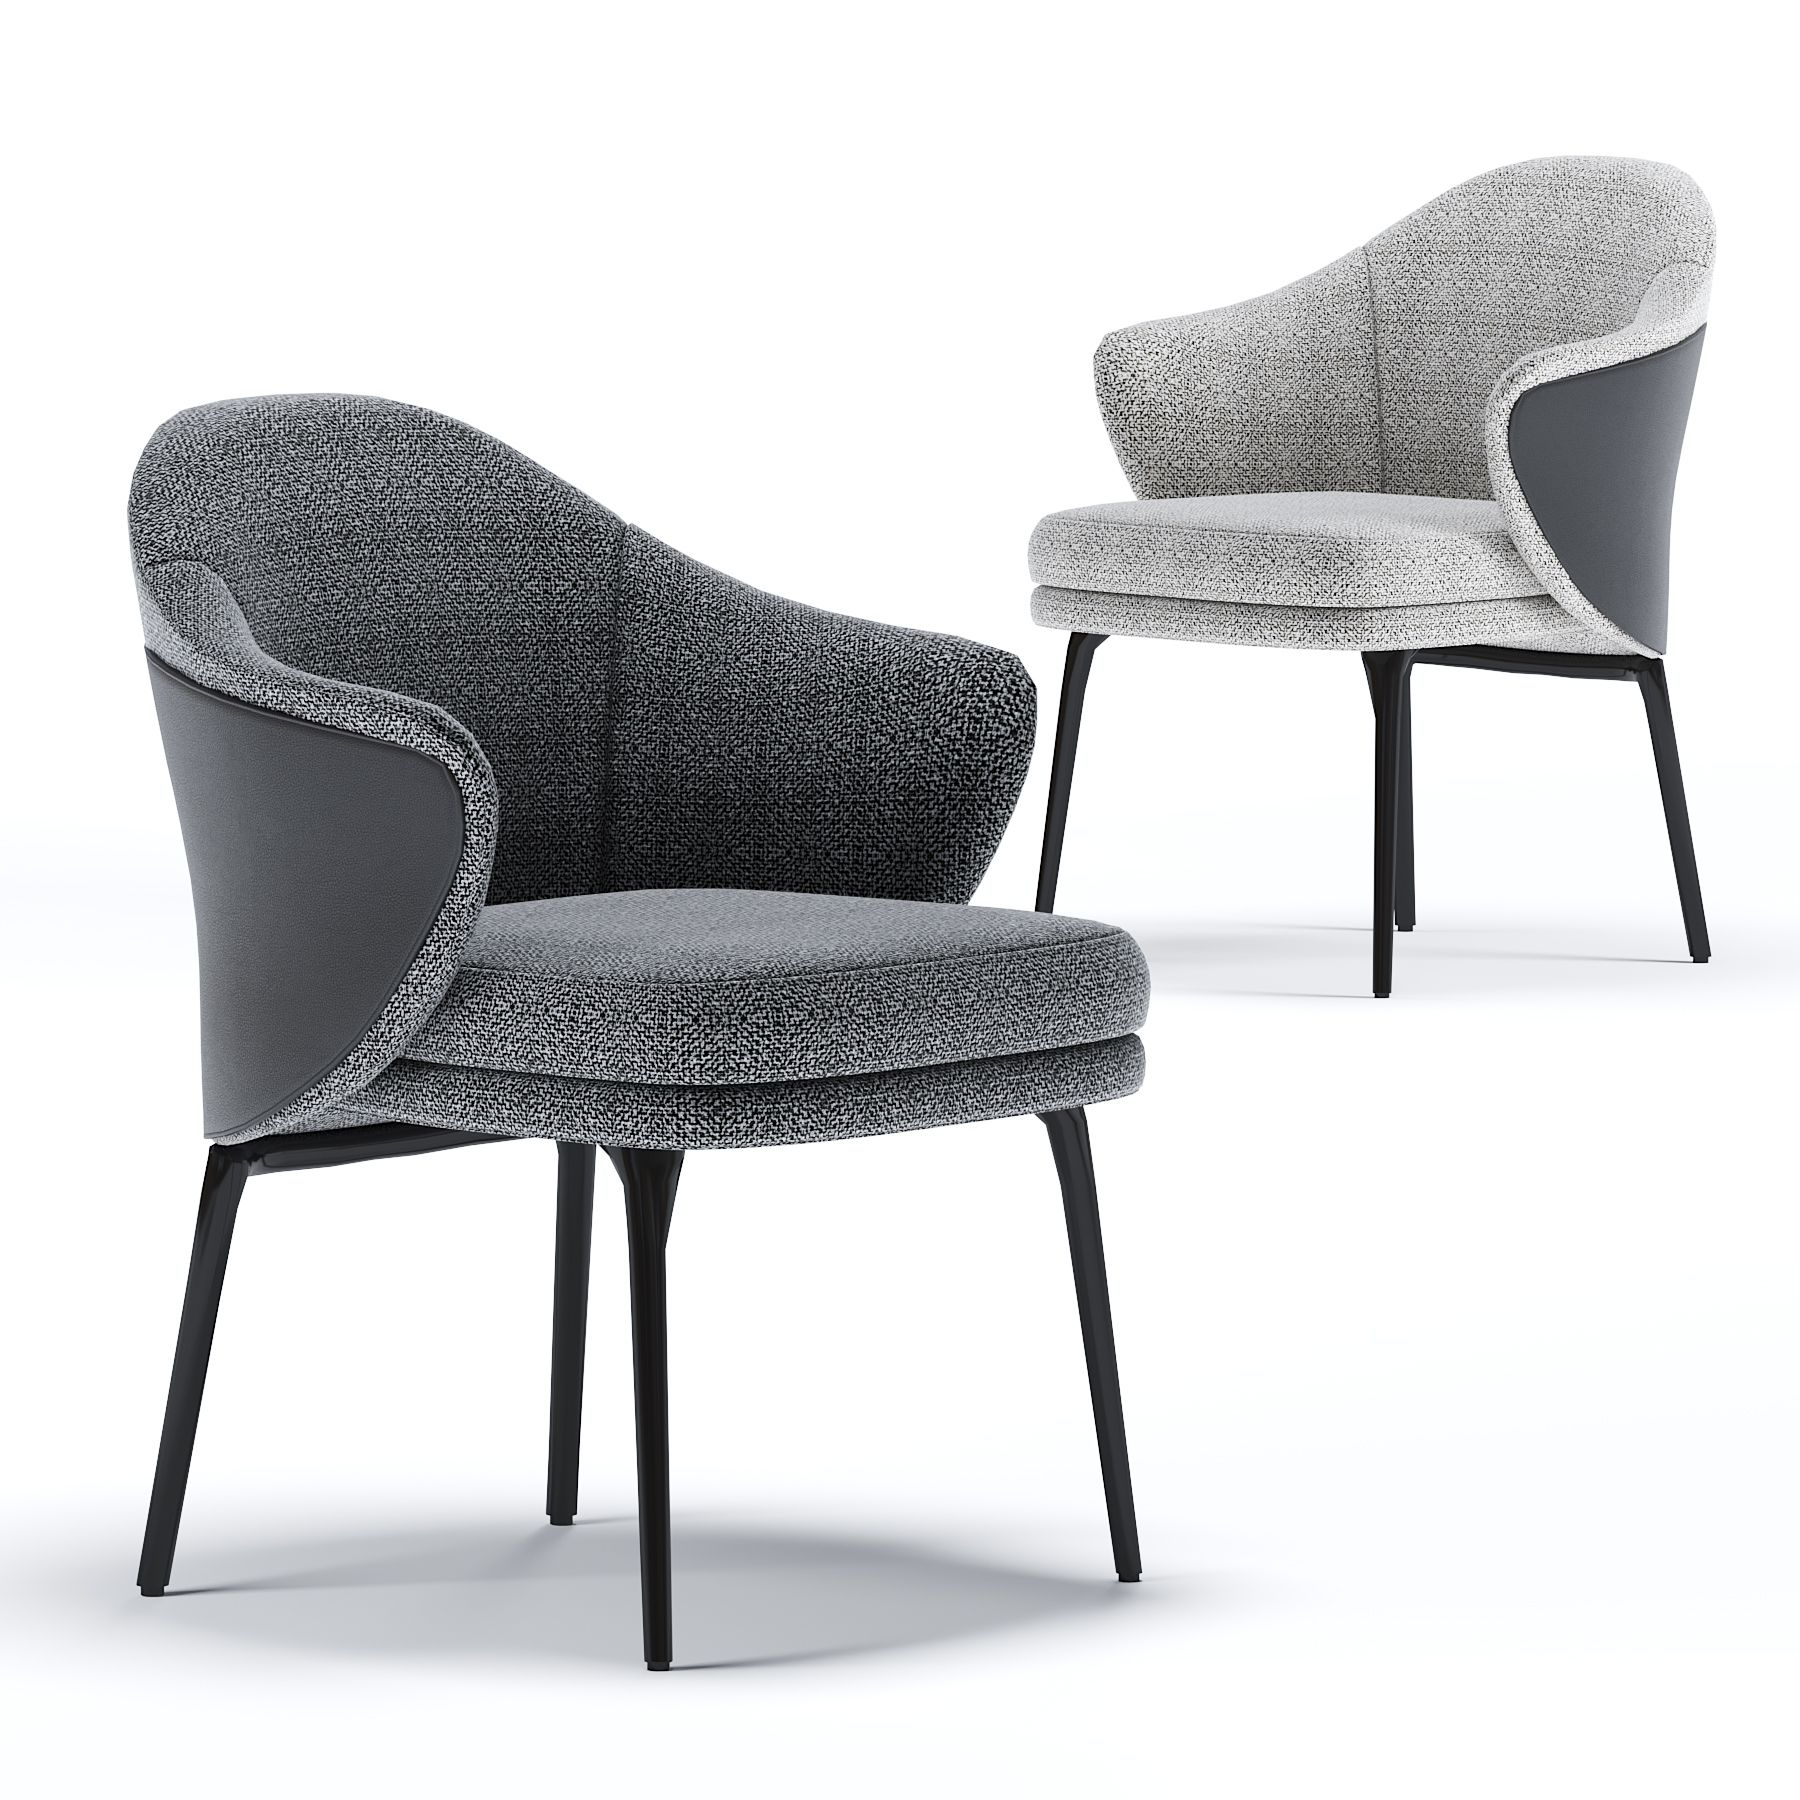 Angie Dining Chair Minotti In 2020 Dining Chairs Chair Dinning Chairs